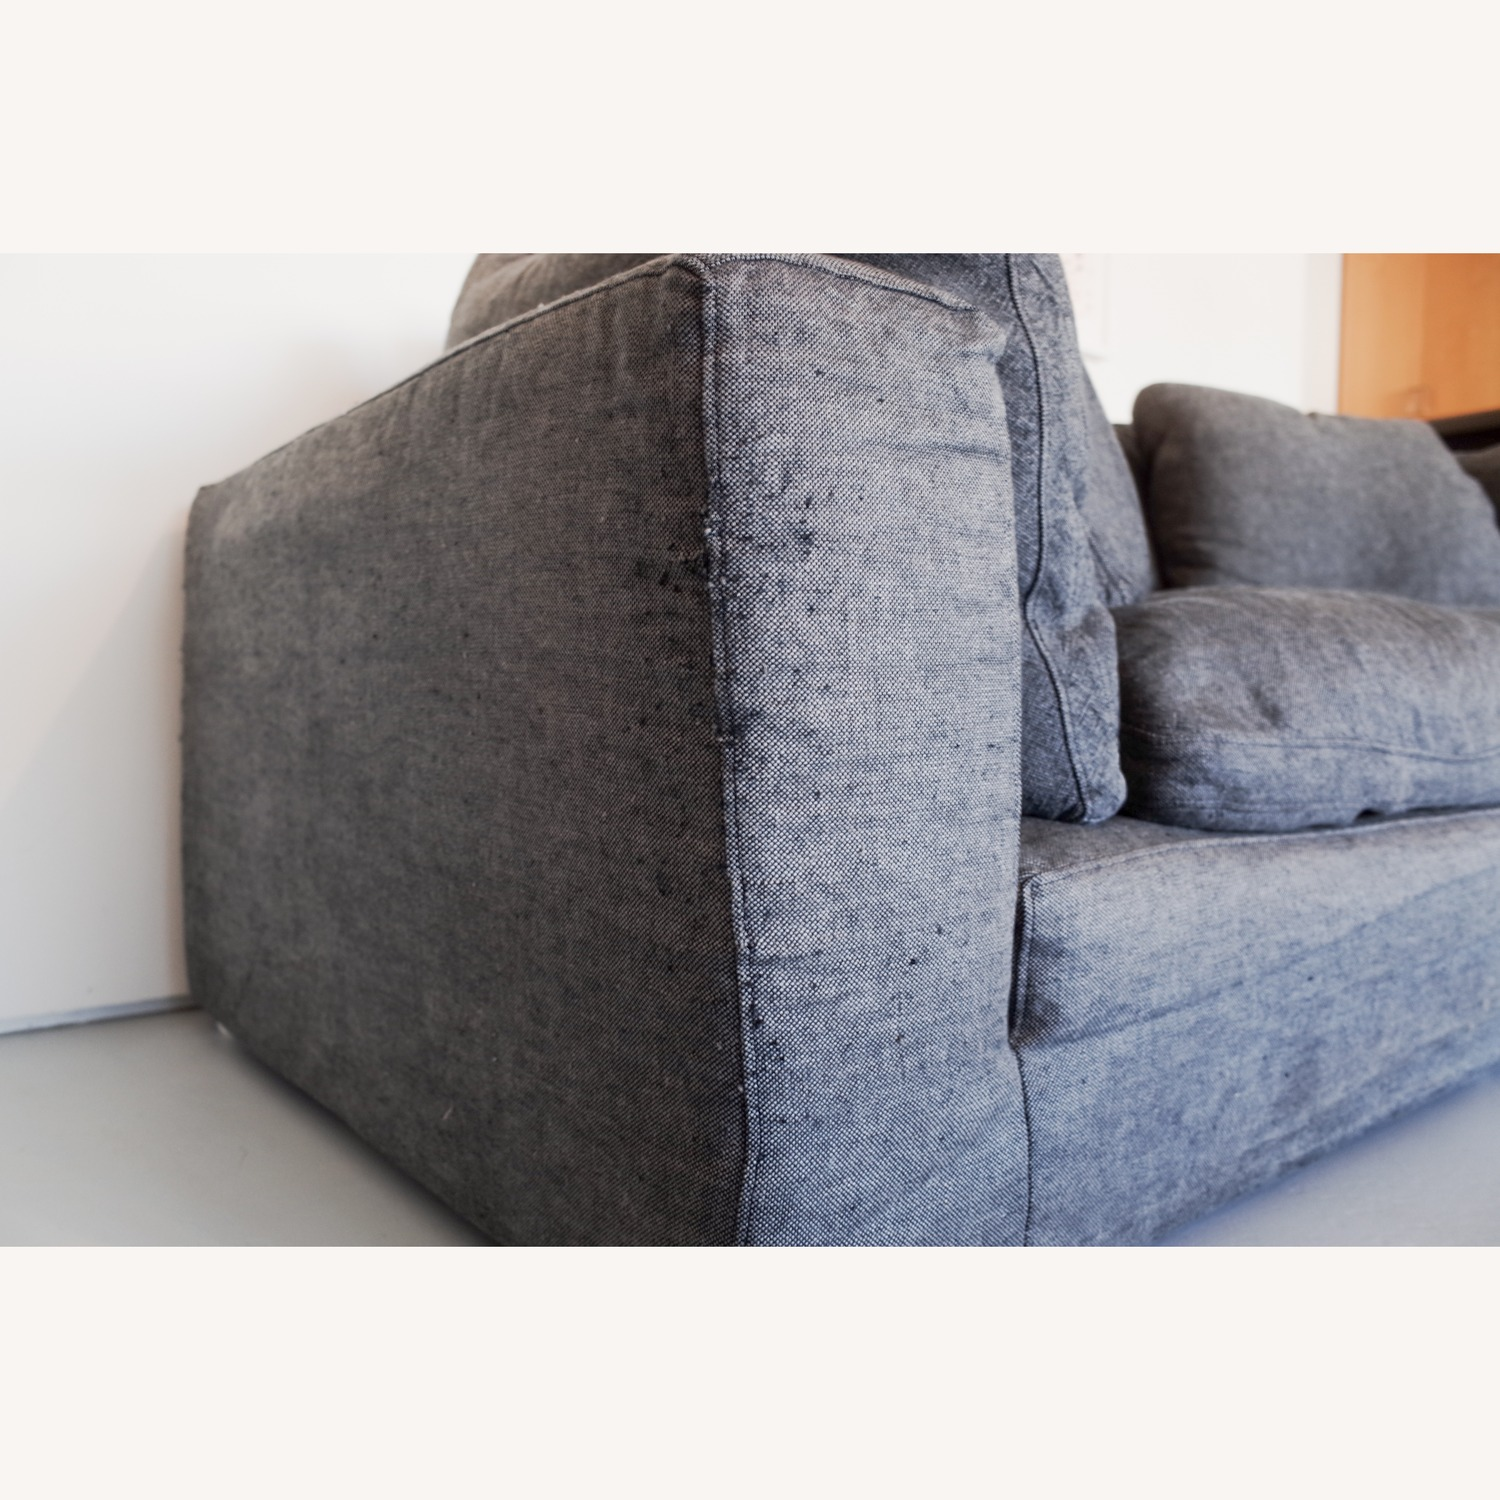 Restoration Hardware Cloud 2 Seat Cushion Sofa - image-4